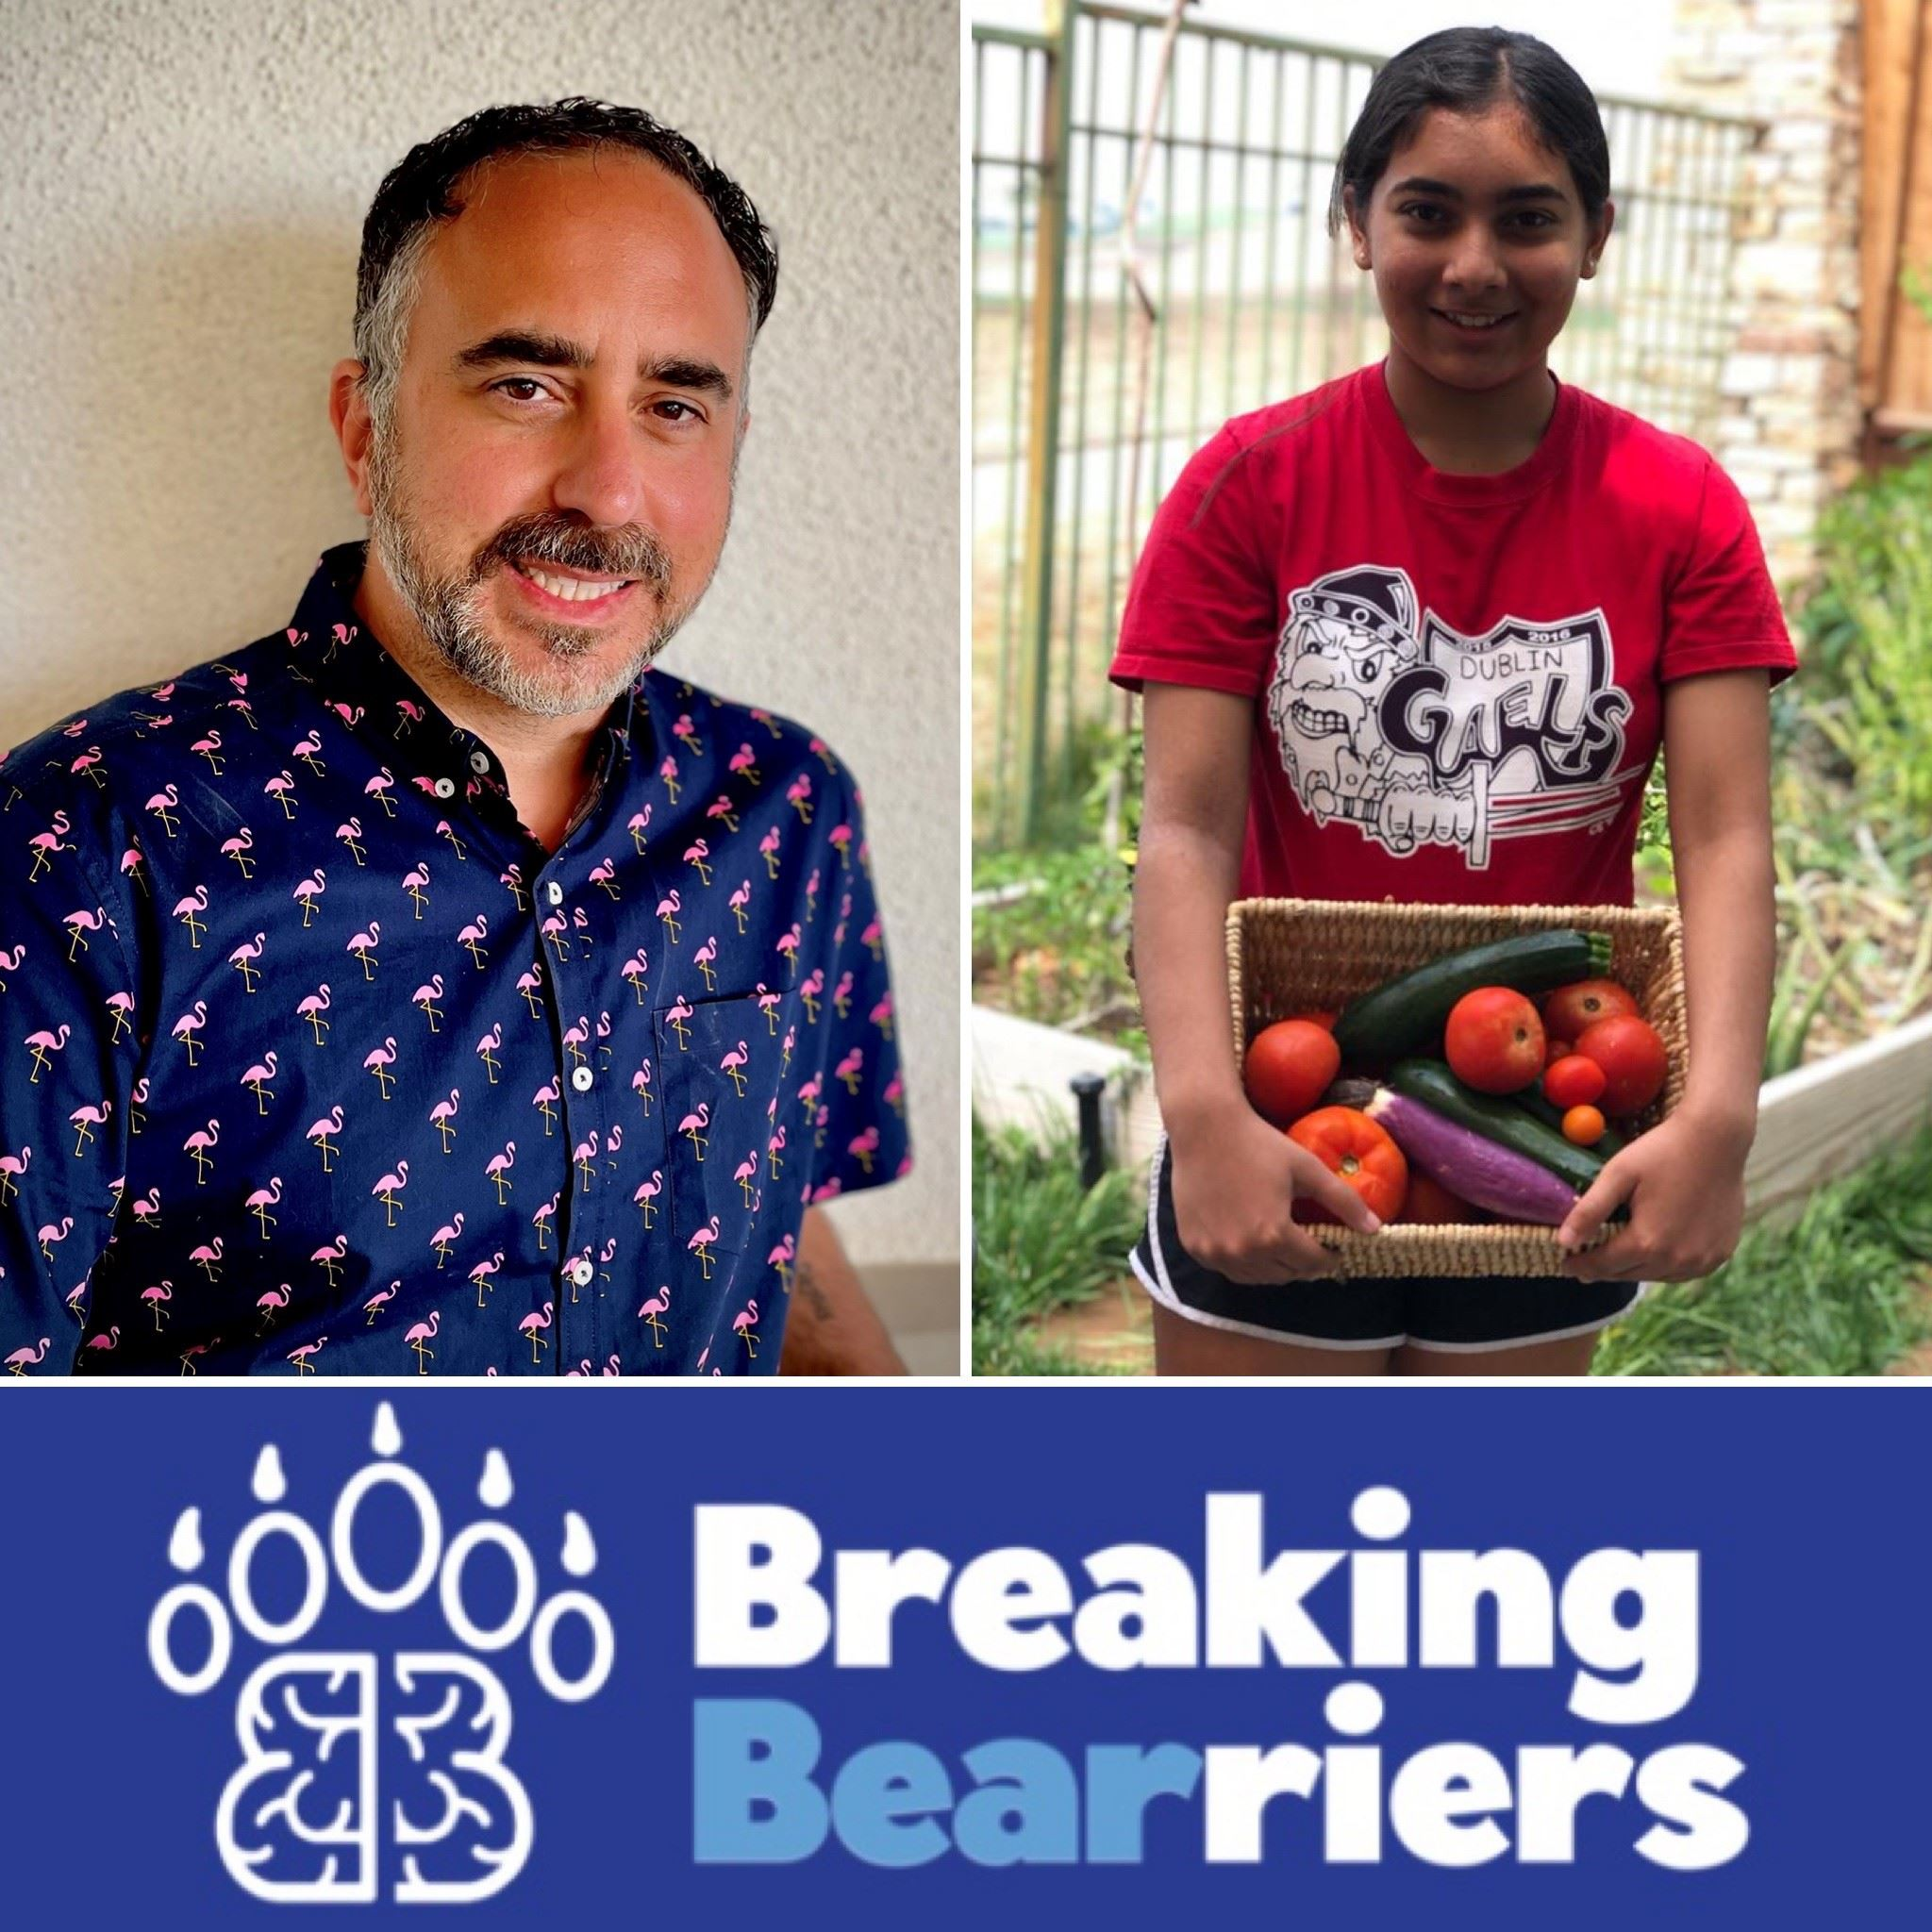 Volunteer Recogniton Award winners: Michael D'Ambrosio, Anya Sengupta, and a Breaking Bearriers l